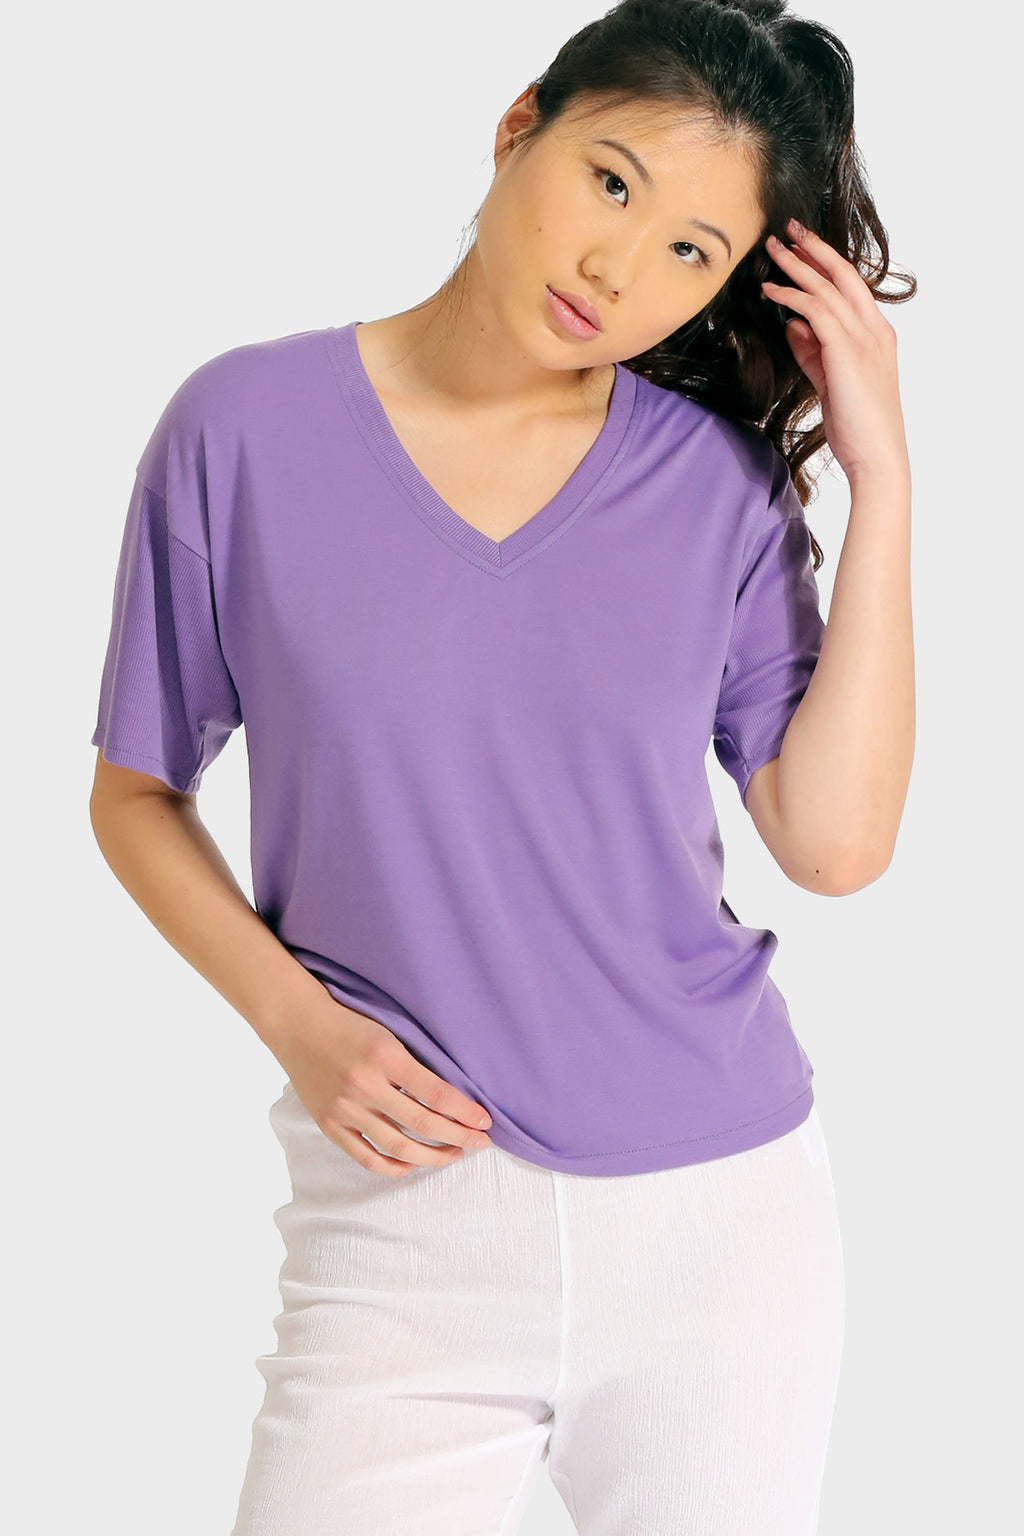 337 BRAND Women's Sustainable Basic Zoey T-Shirt